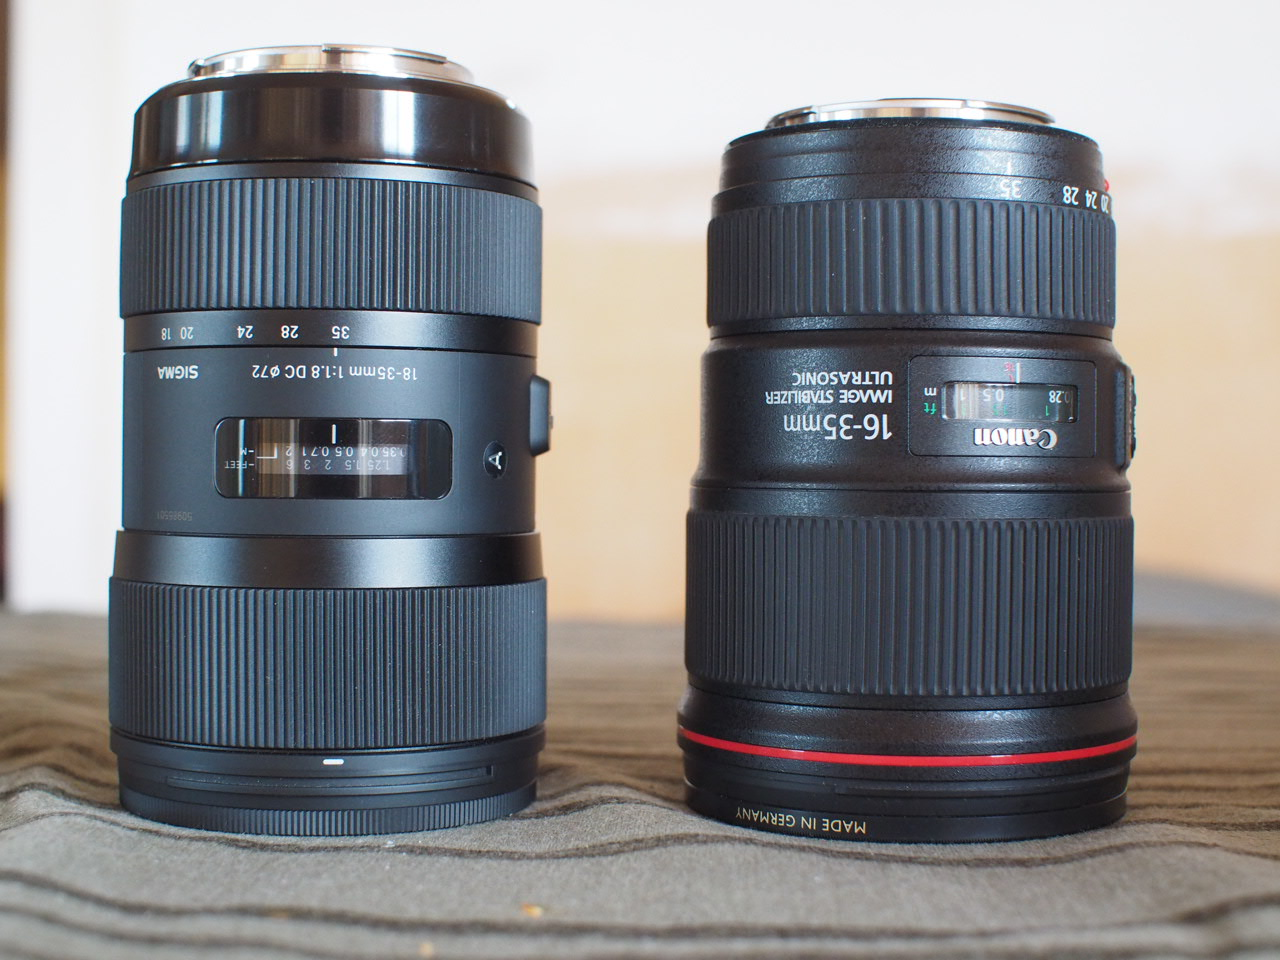 Adapted Sigma EF DC 18-35mm Art f1.8 to m43: Adapted Lens Talk Forum ...